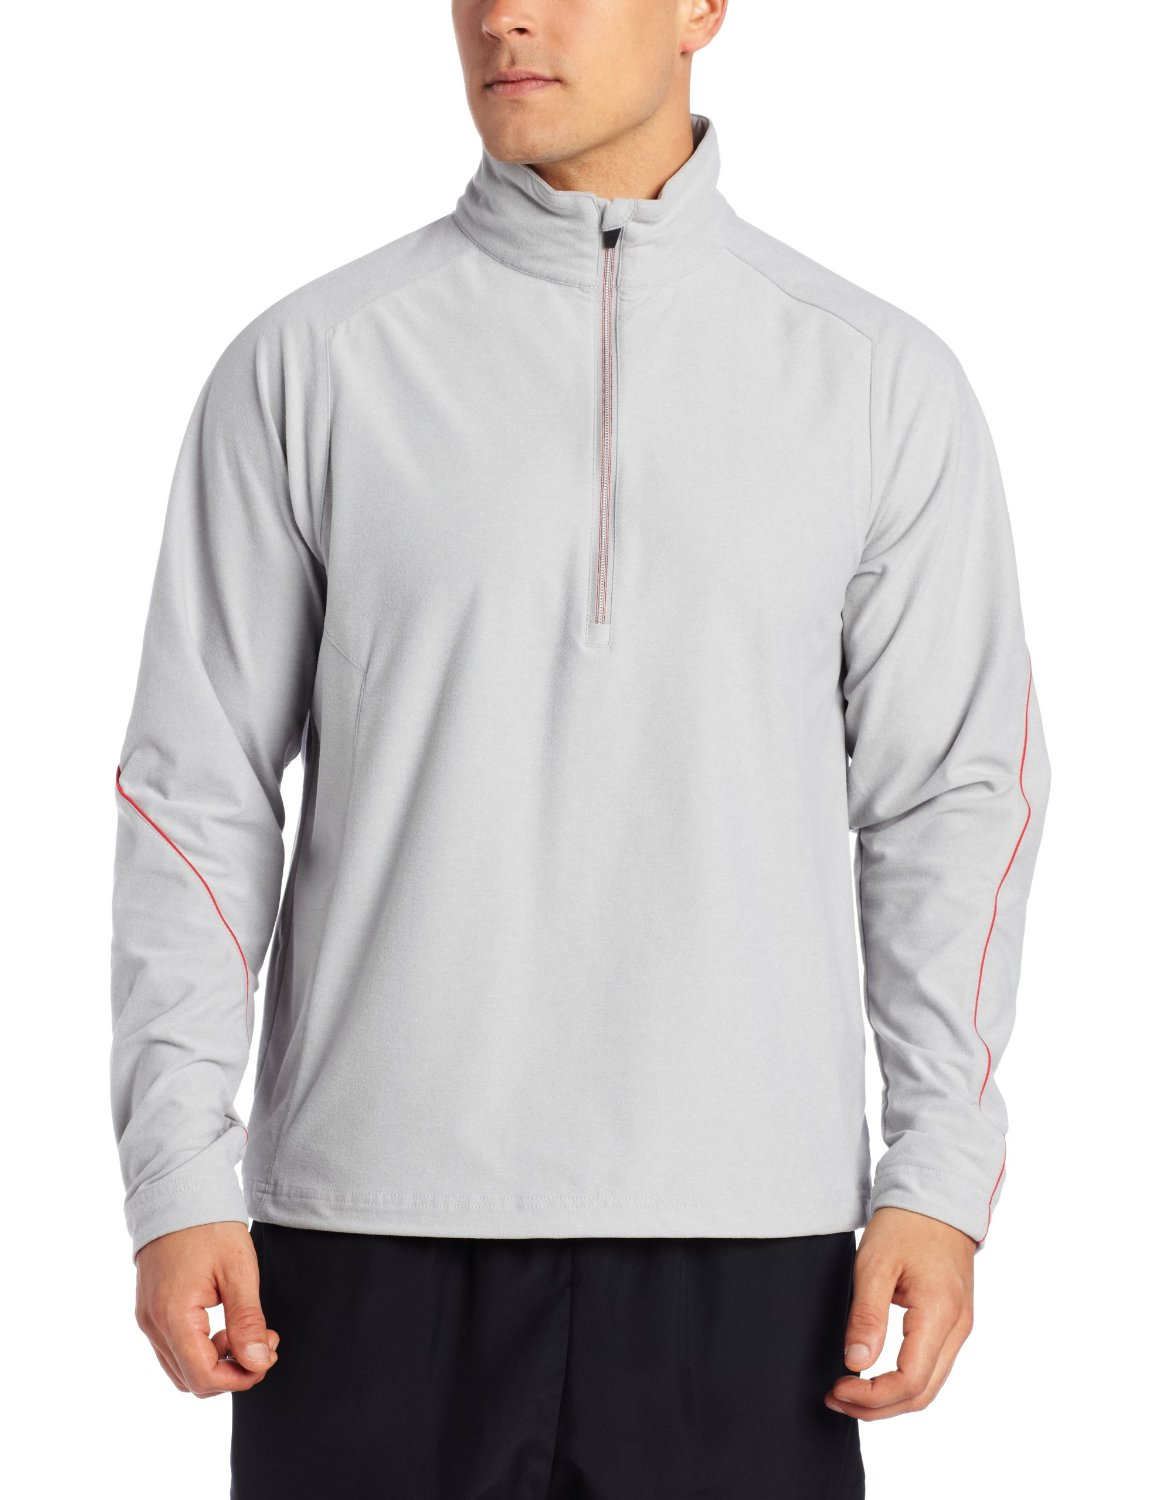 Mens Zero Restriction Dash Pullover Golf Jackets